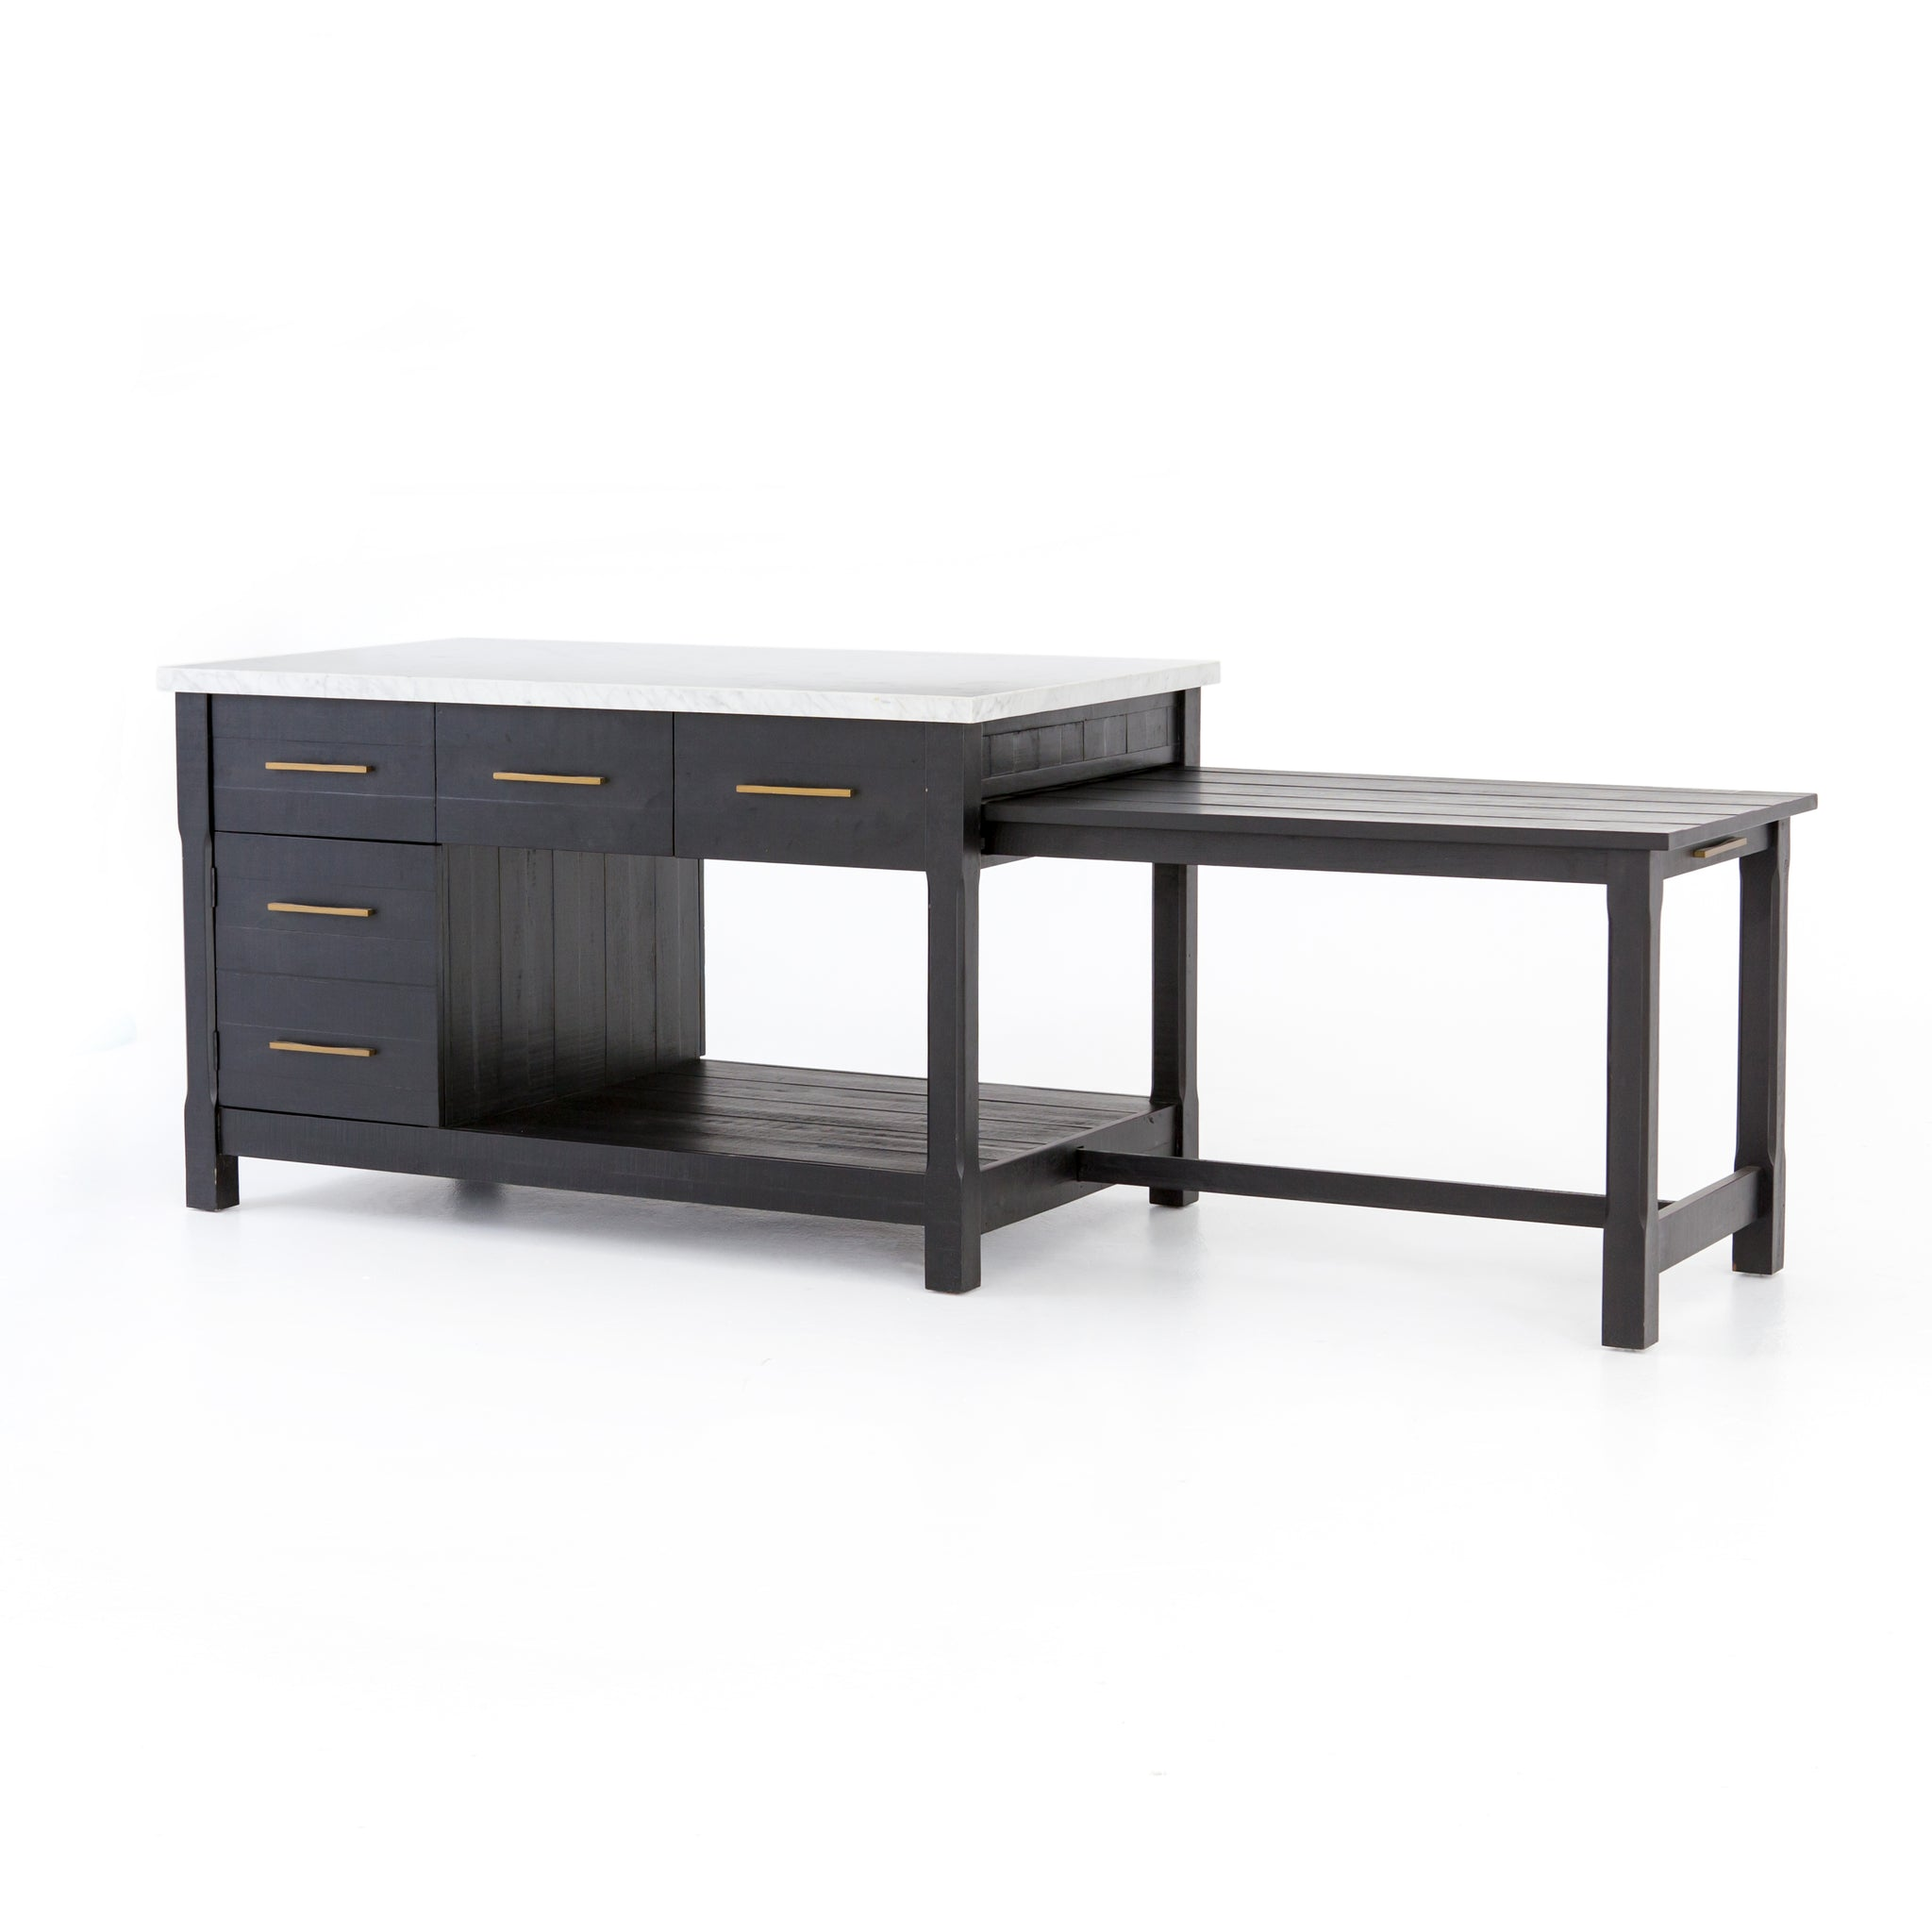 Multi Function Black Kitchen Island Marble Top With A Slide Out Dining